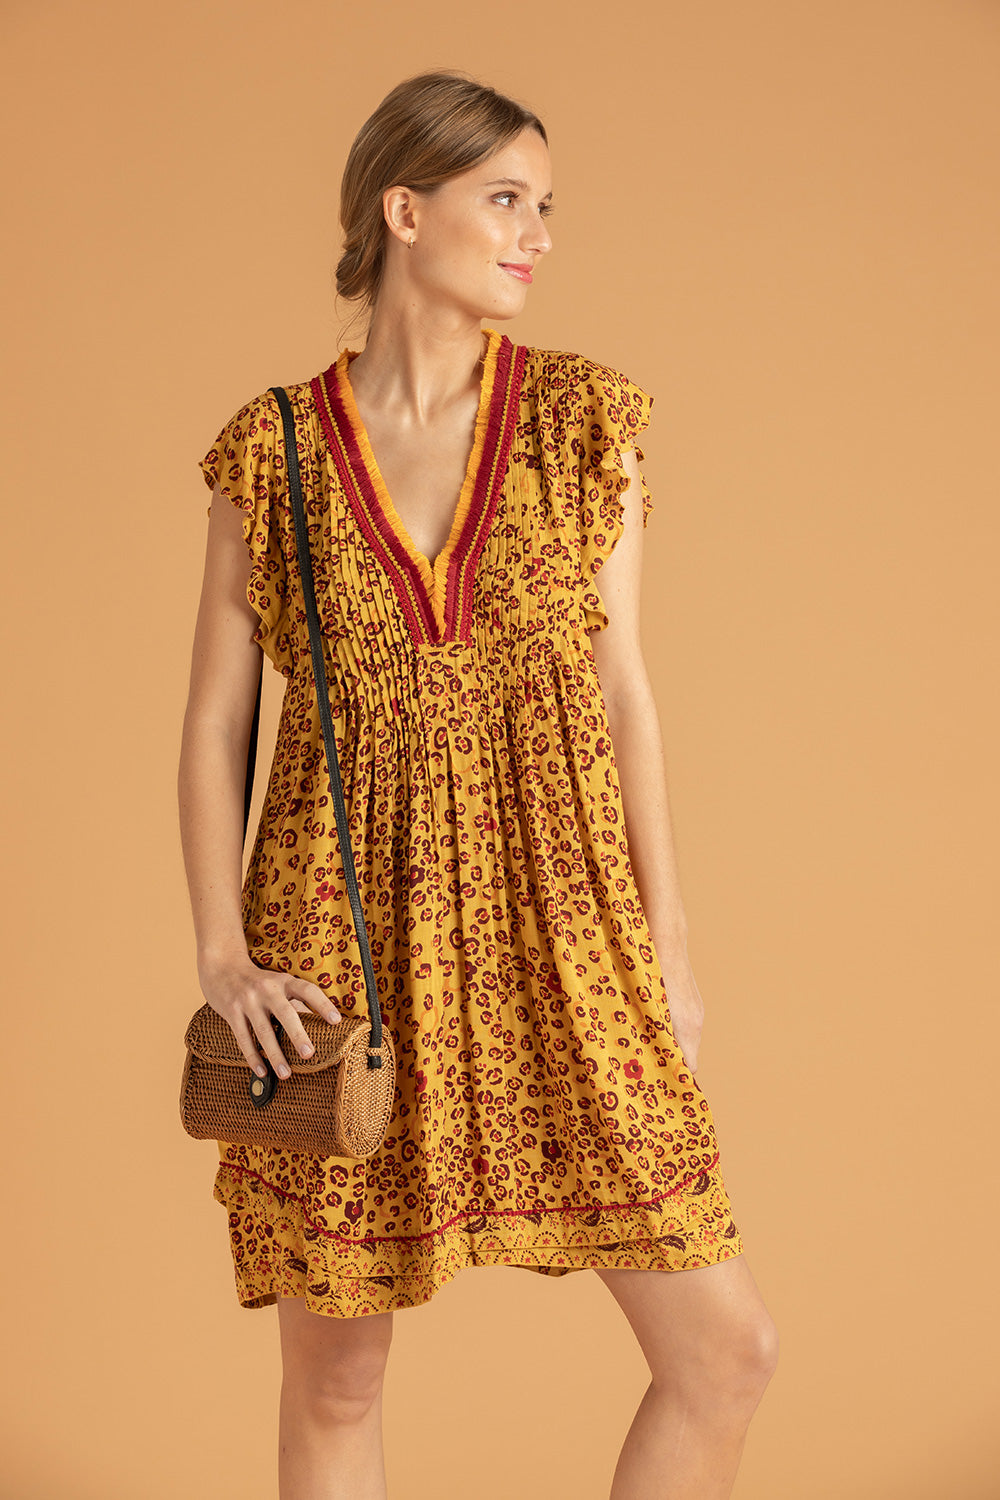 Mini Dress Sasha Lace Trimmed - Yellow Leo